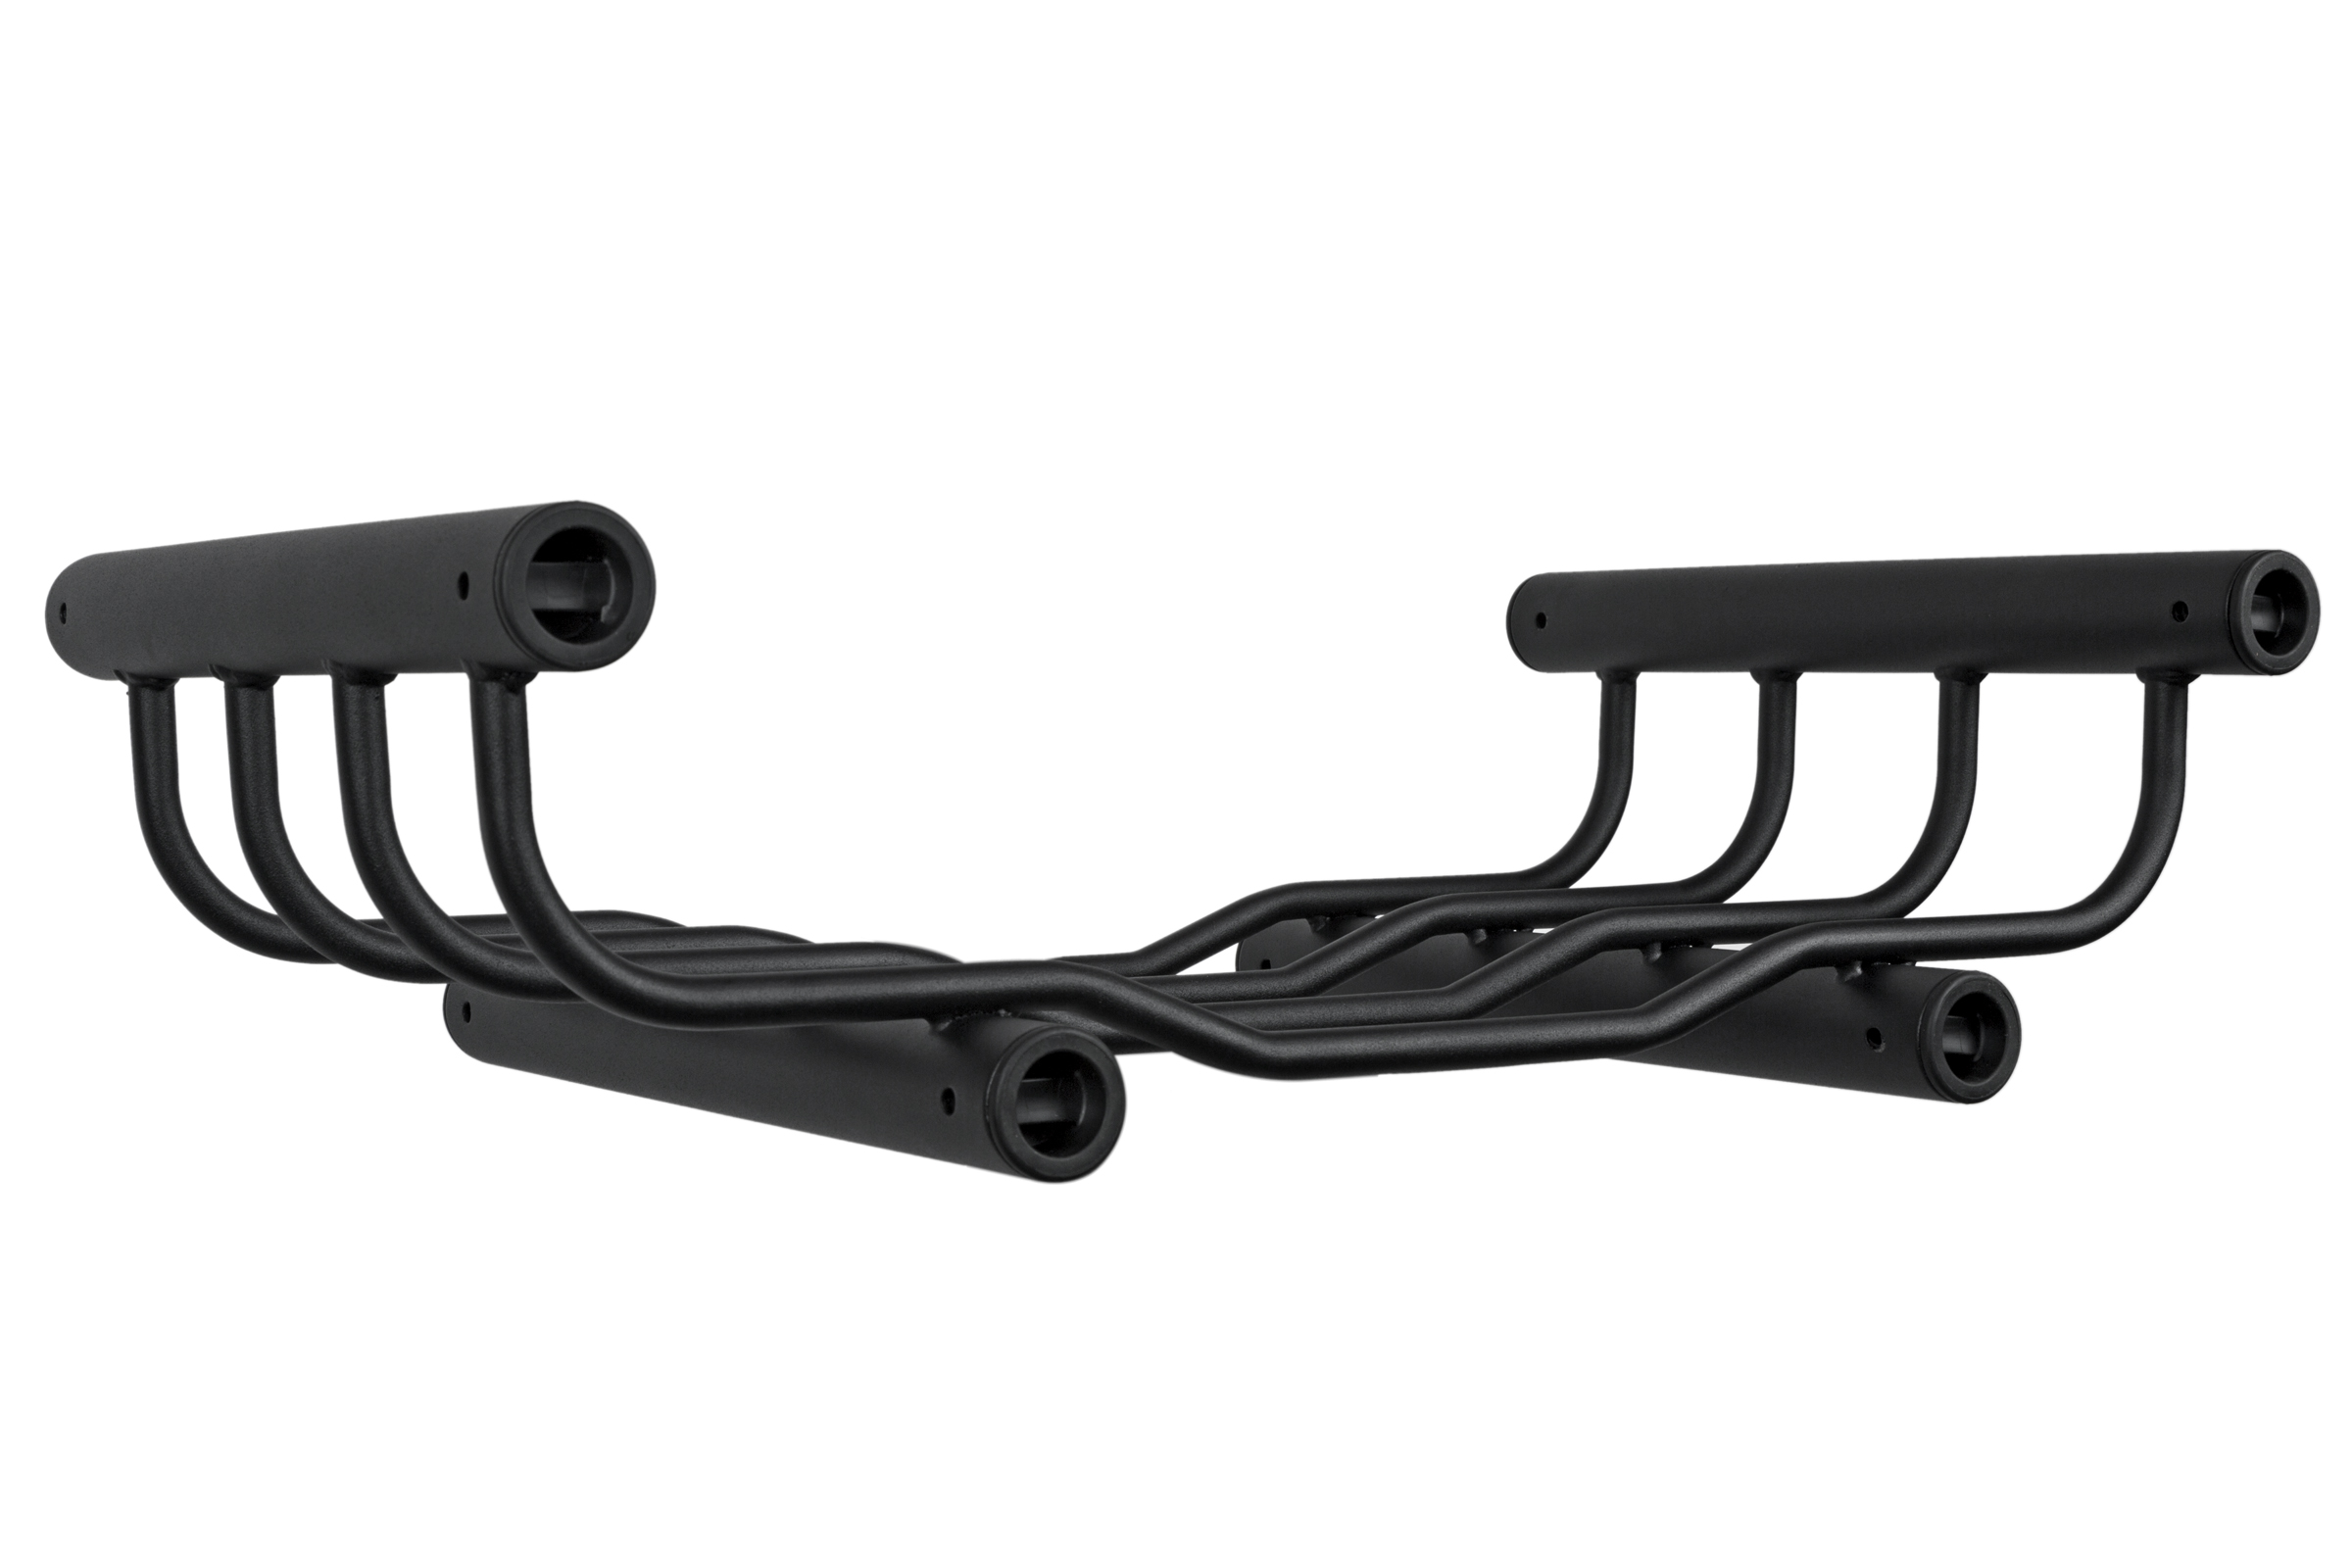 Kuat Mini Skinny Extender Rack It Com